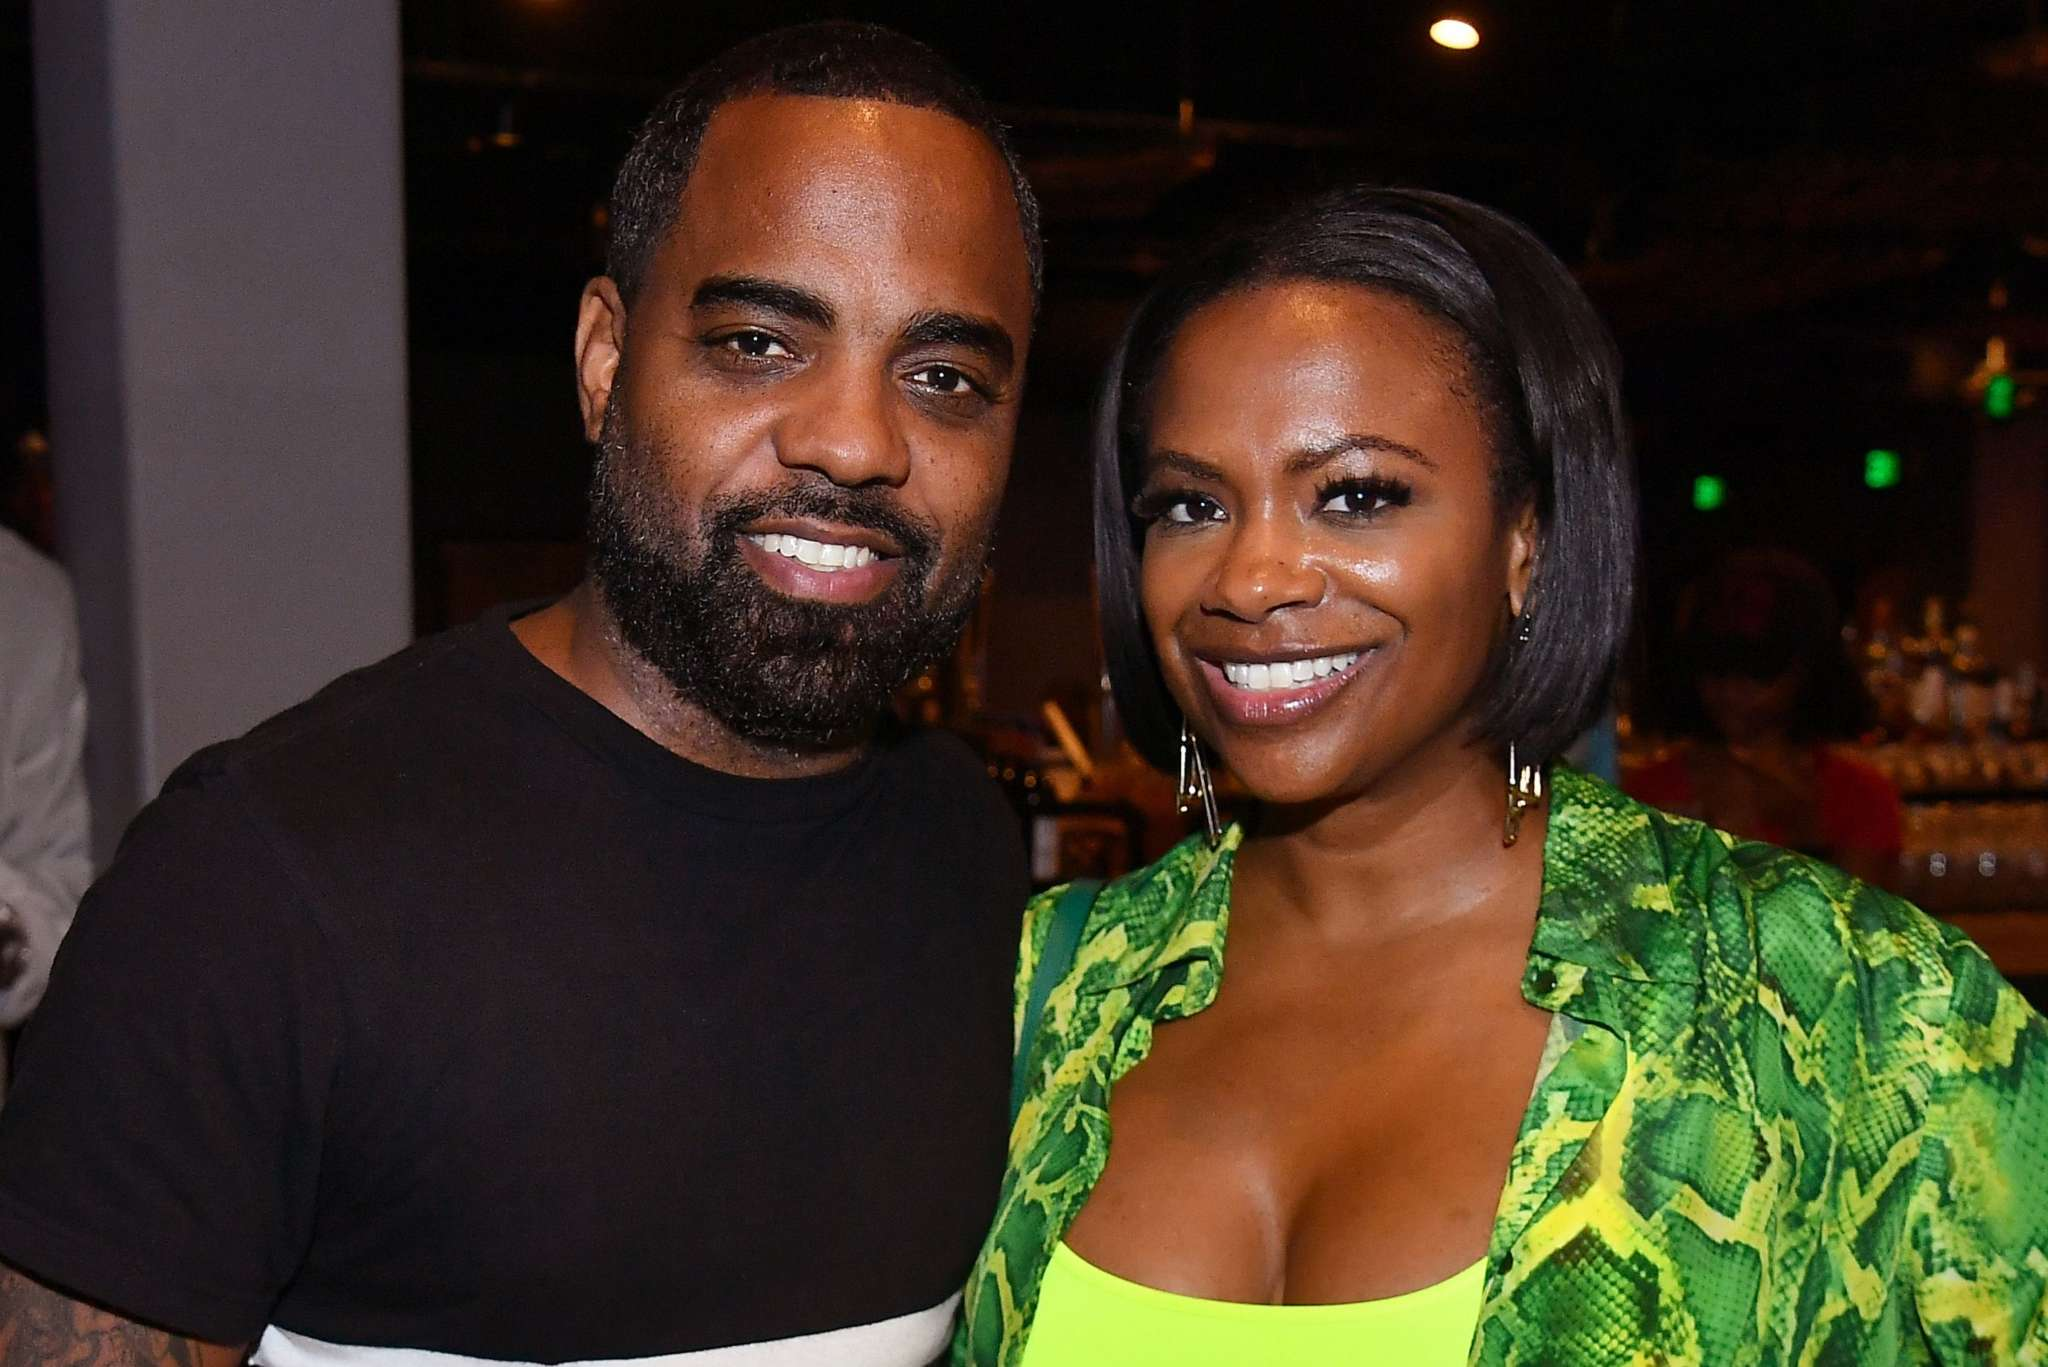 kandi-burruss-wishes-a-happy-birthday-to-the-hardest-working-woman-she-knows